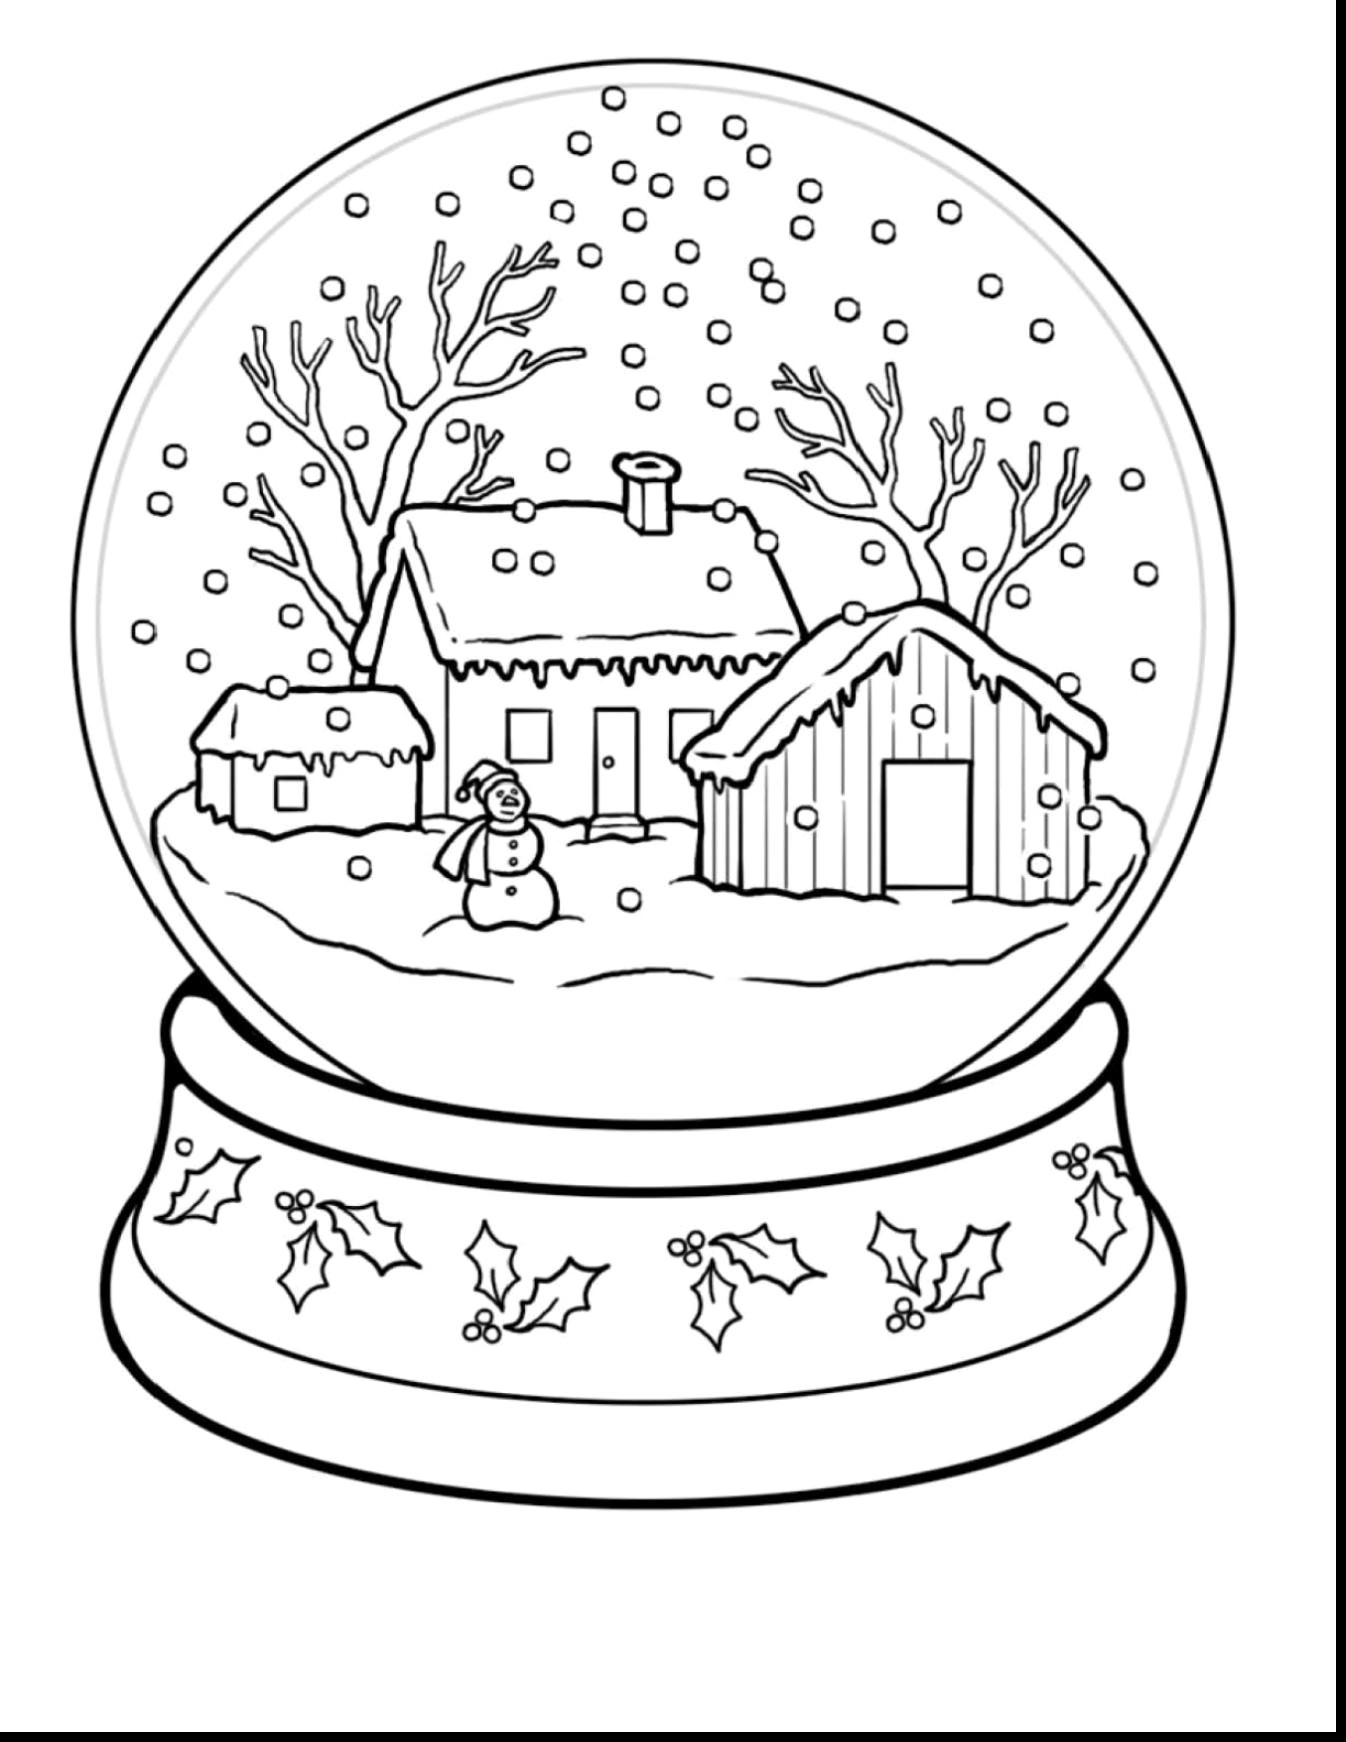 Free Printable Winter Coloring Pages Page Of Scene - Telematik - Free Printable Winter Coloring Pages